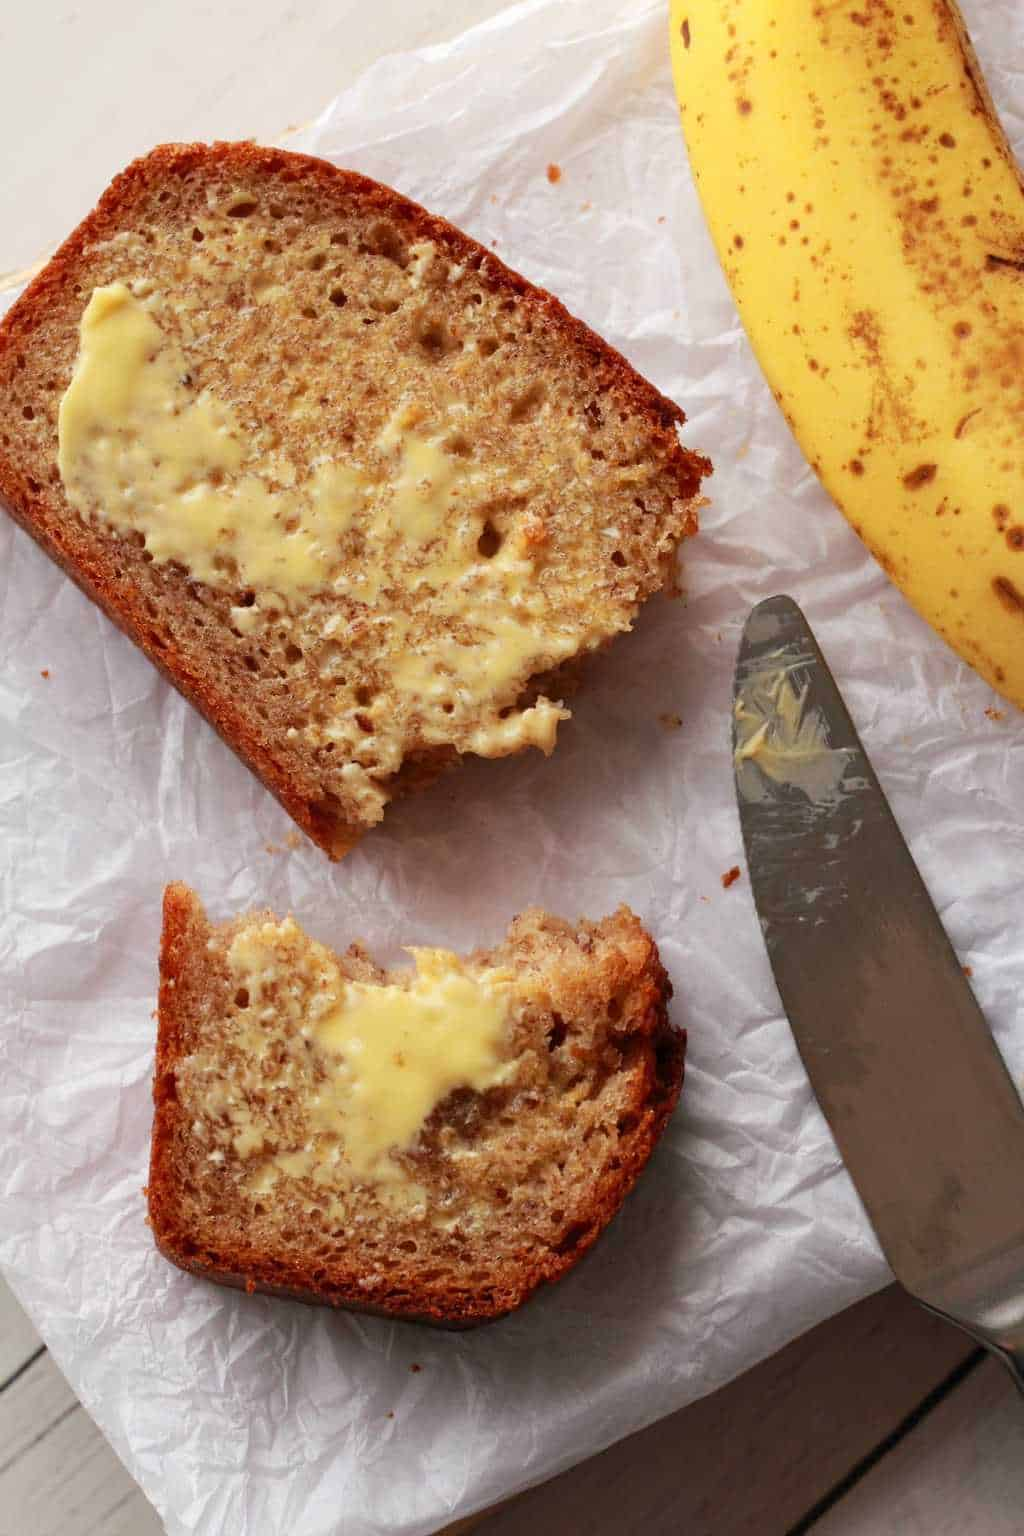 A slice of Vegan Banana Bread, broken in half and buttered. A butter knife and a banana alongside it.